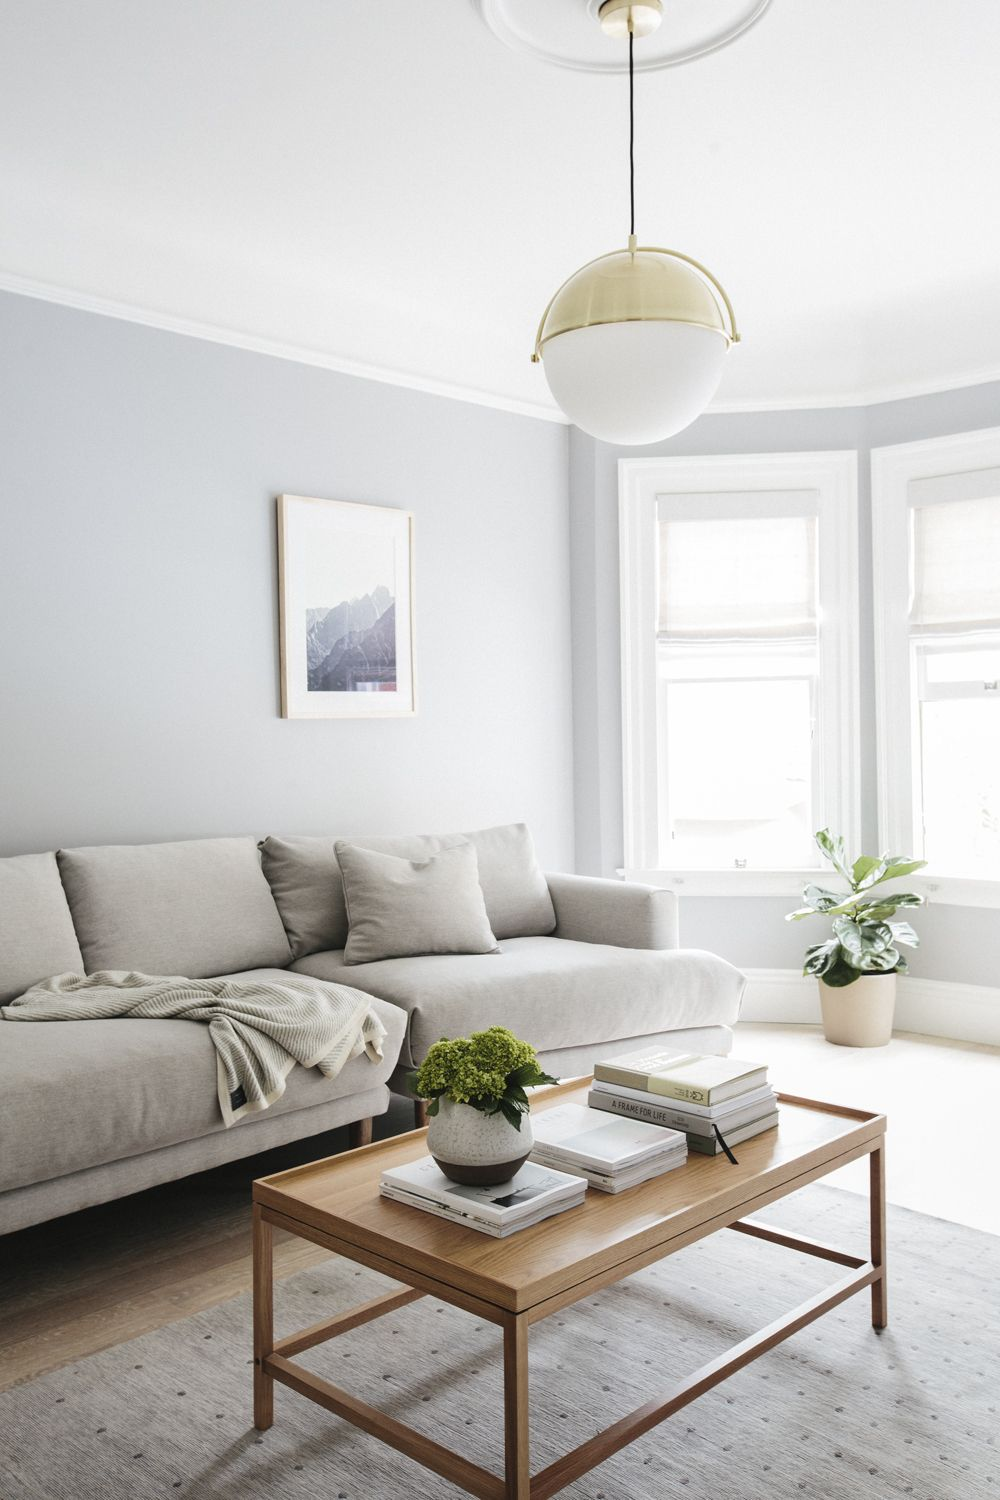 Home interior ceiling design home tour warm minimalism you gotta see to believe apartment